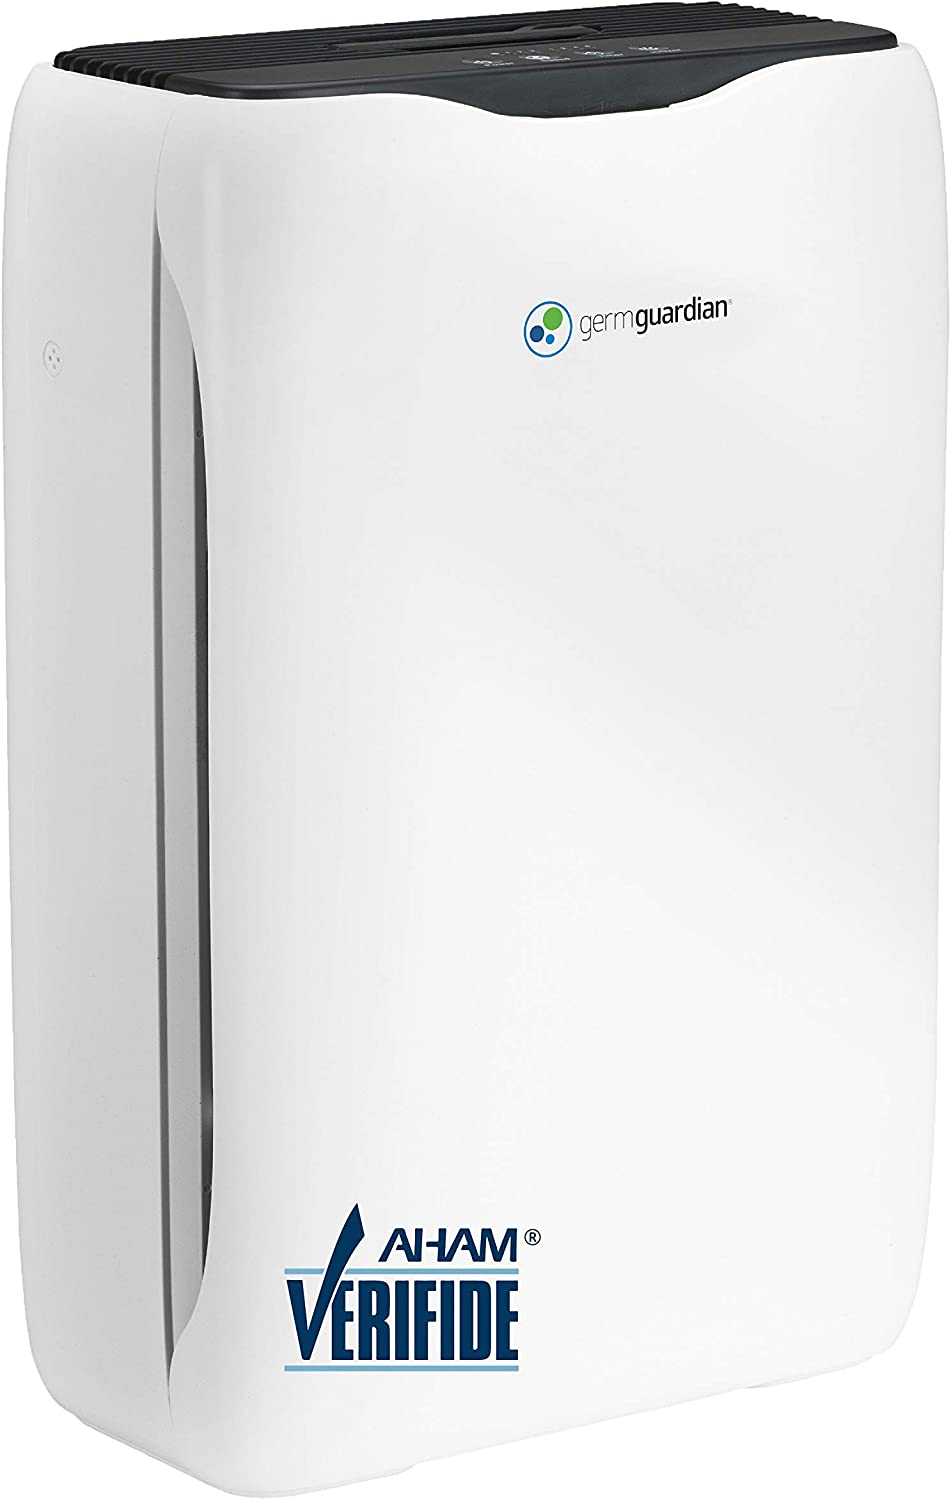 Germ Guardian True Hepa Filter Air Purifier for Home, Office, Bedrooms, Filters Allergies, Pollen, Smoke, Dust, Pet Dander, Mold, Odors, Deodorizer with Ionizer, Quiet 3-in-1 AC5600WDLX